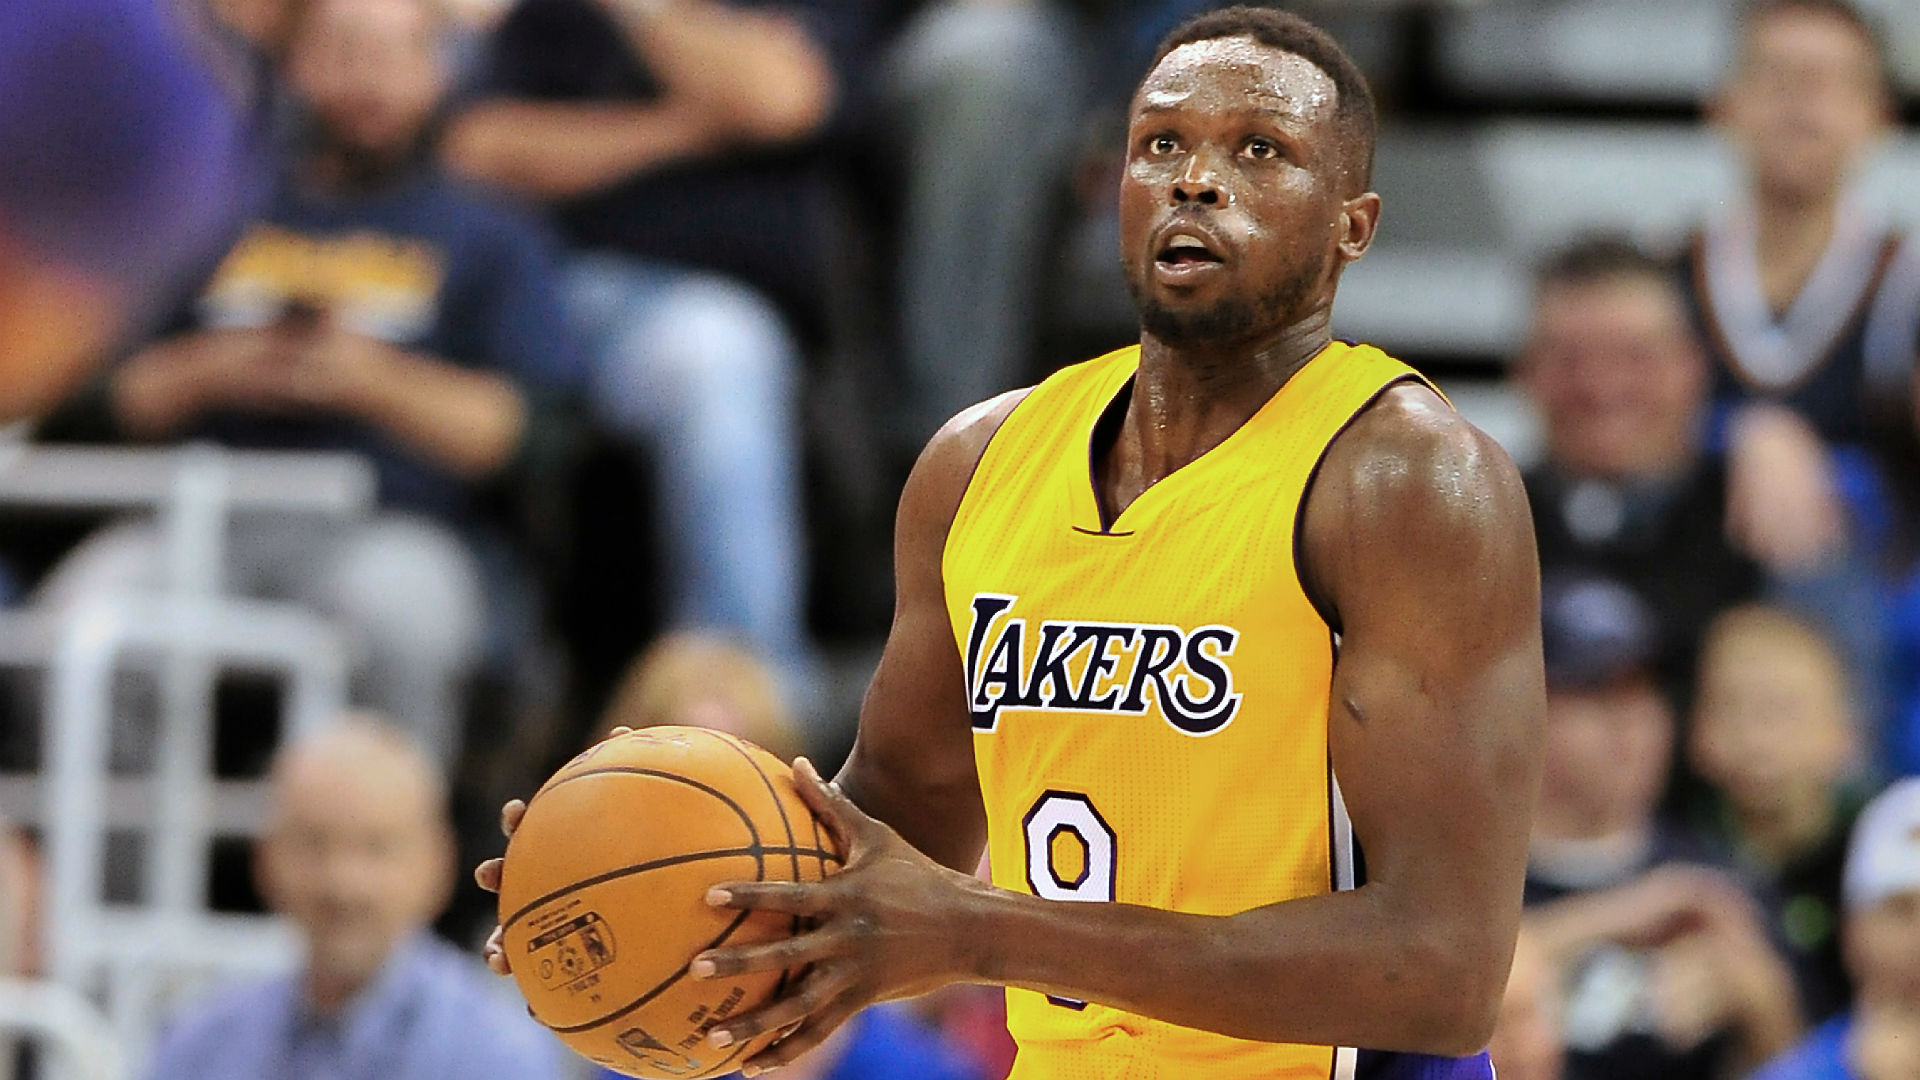 NBA free agency rumors: Timberwolves expected to be interested in forward Luol Deng